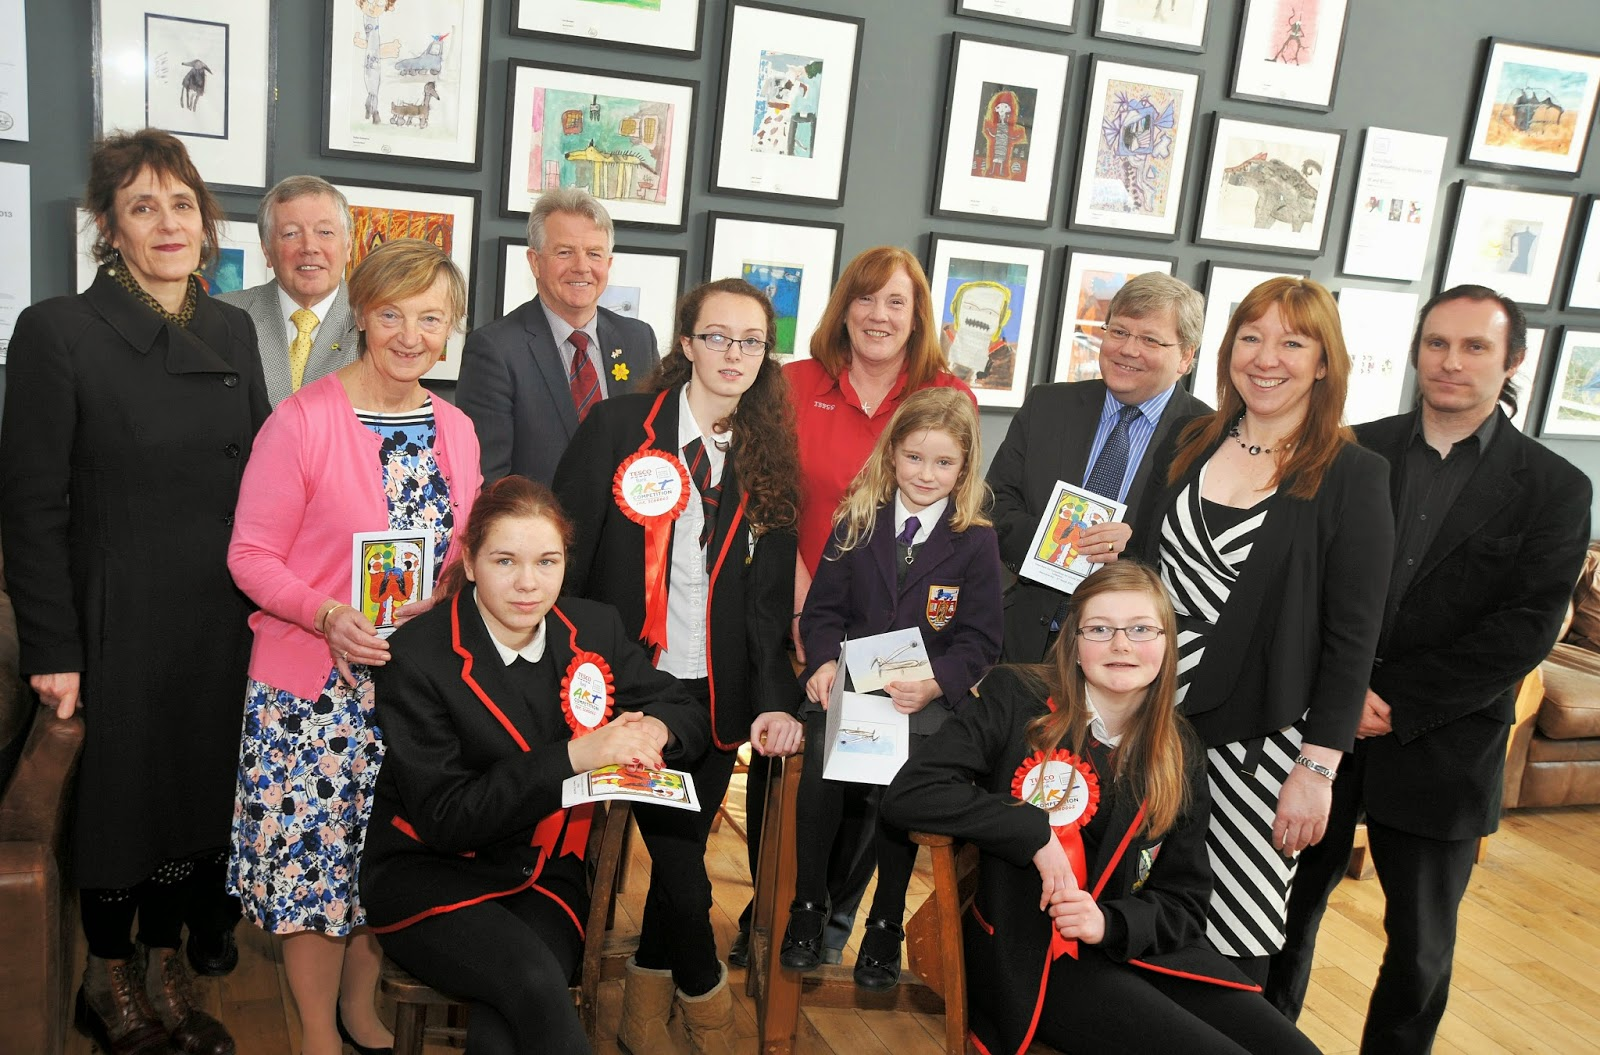 Ayrshire Scotland Business News Sustainable Development Windpower South Council Talented Children And Young People Across Including Artists From Schools Is Now On Display In The Beanscene